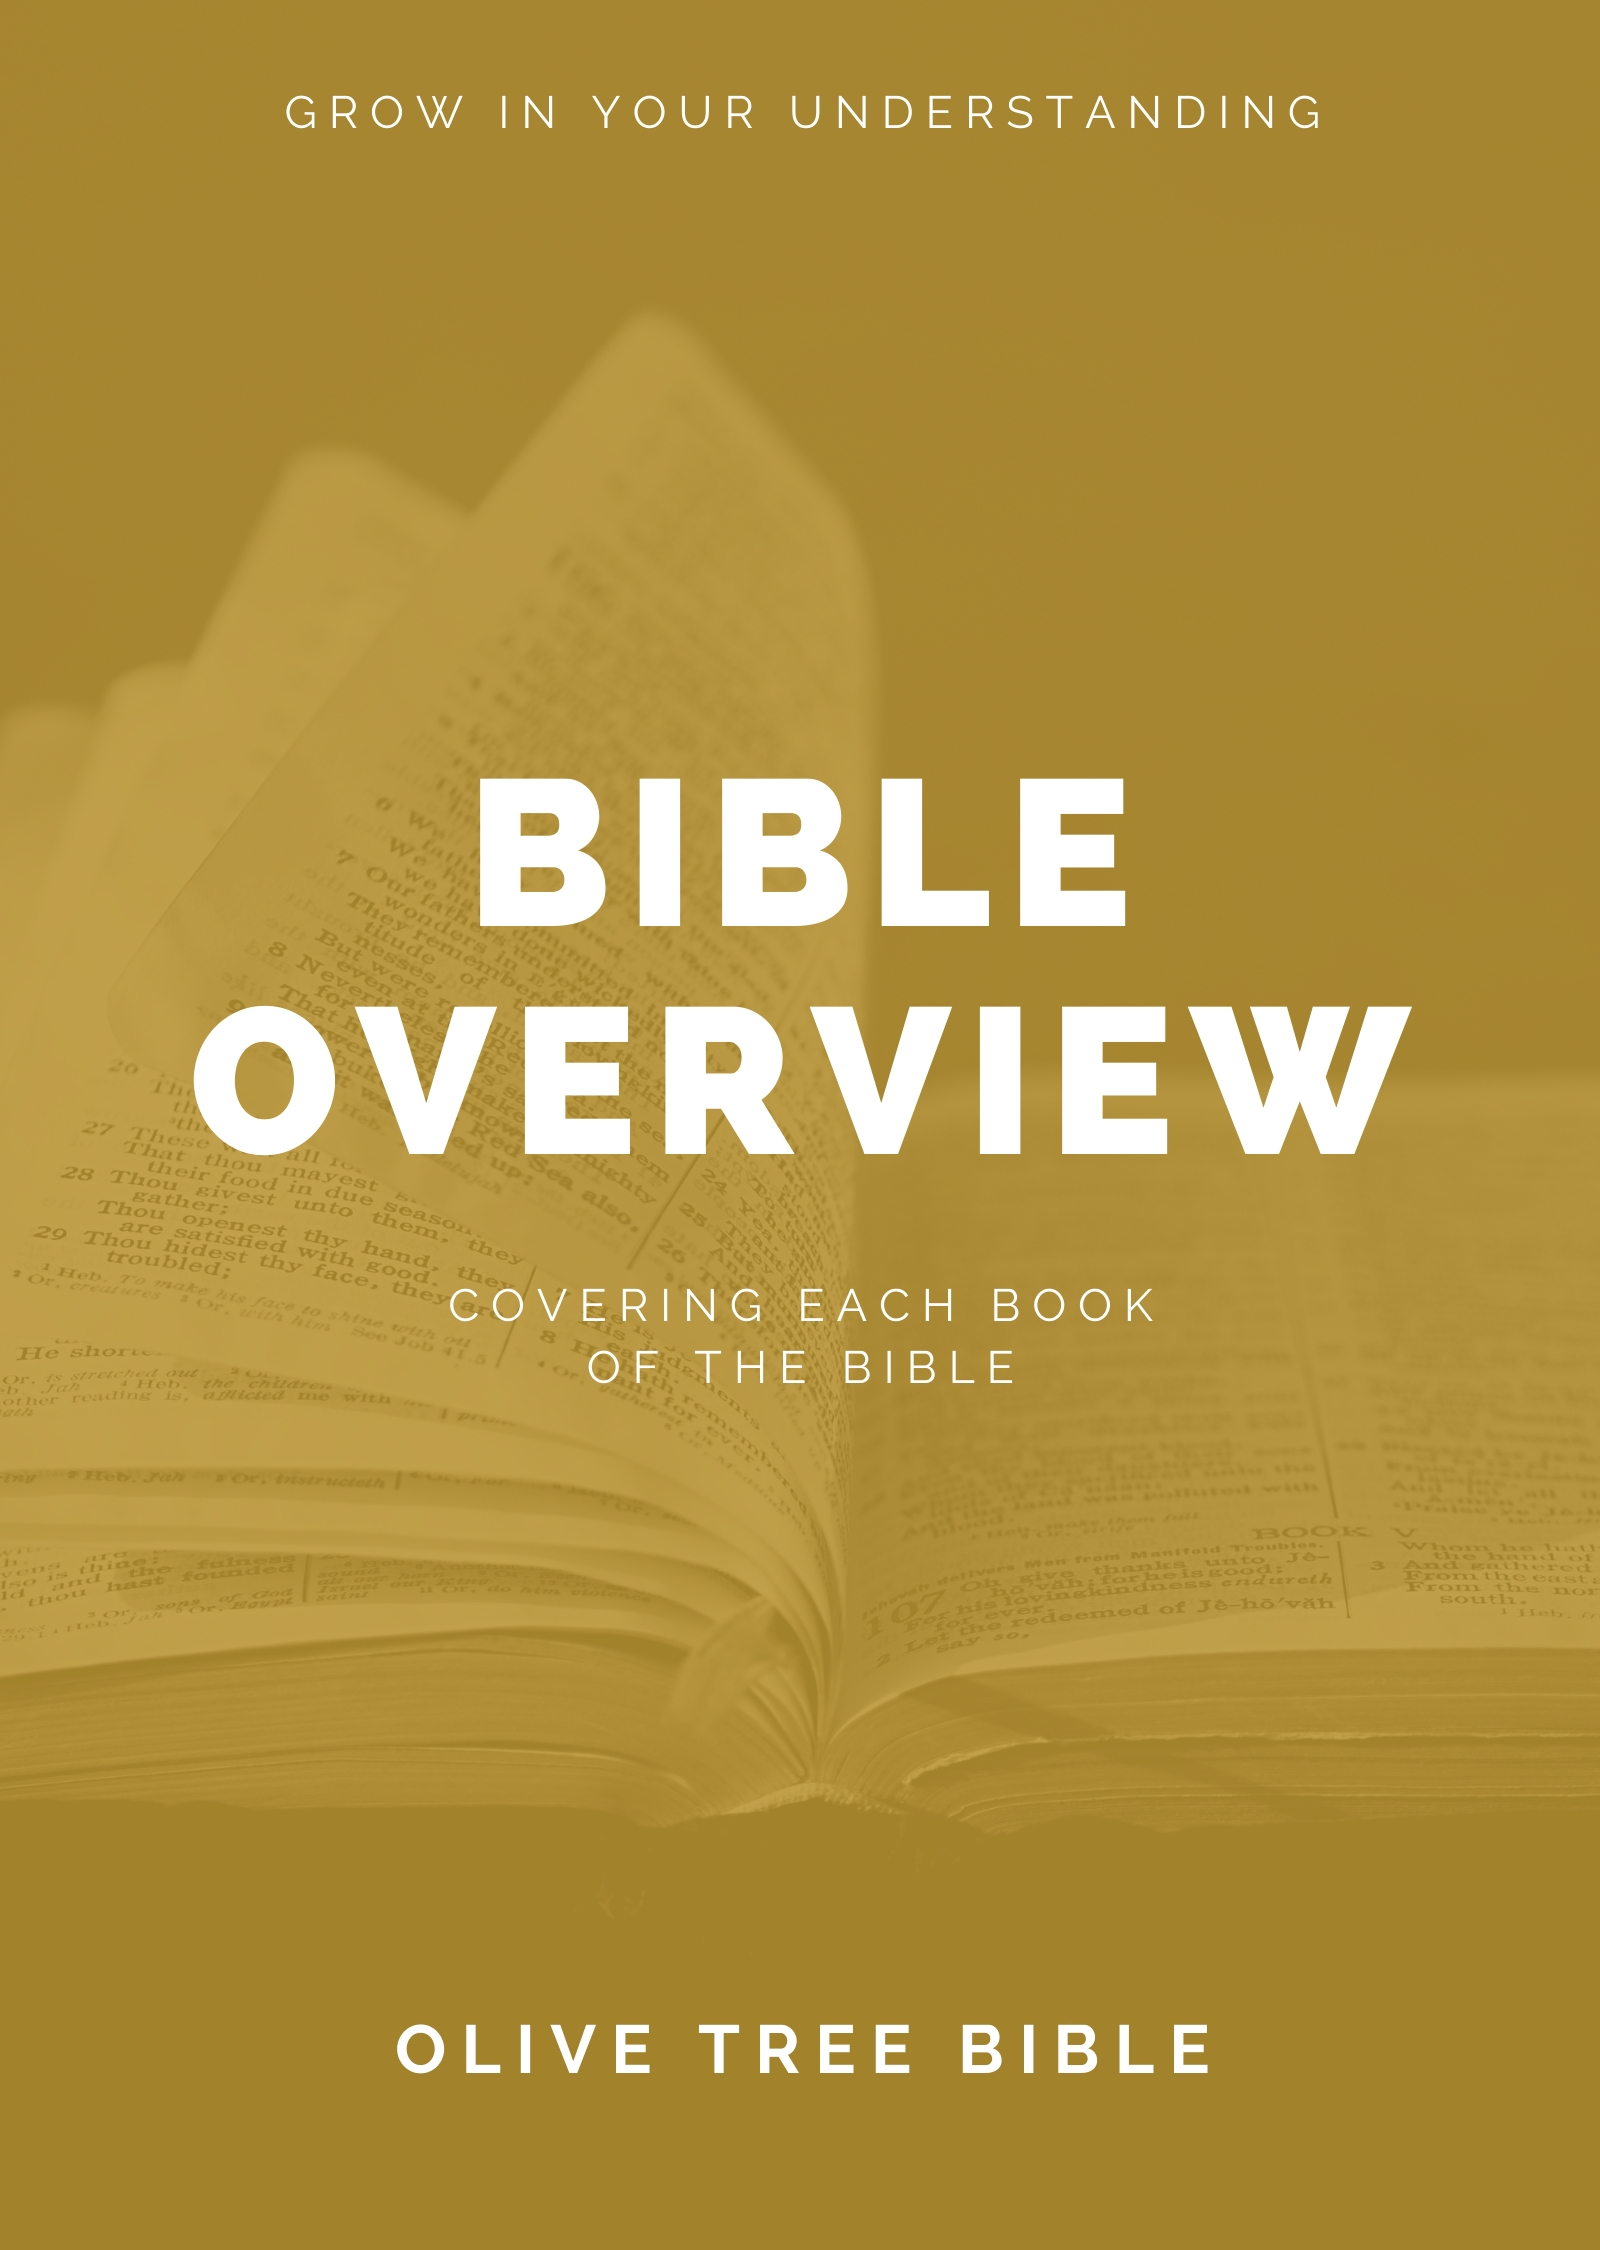 Olive Tree Bible Overview By Olive Tree For The Olive Tree Bible App On IPad IPhone Android